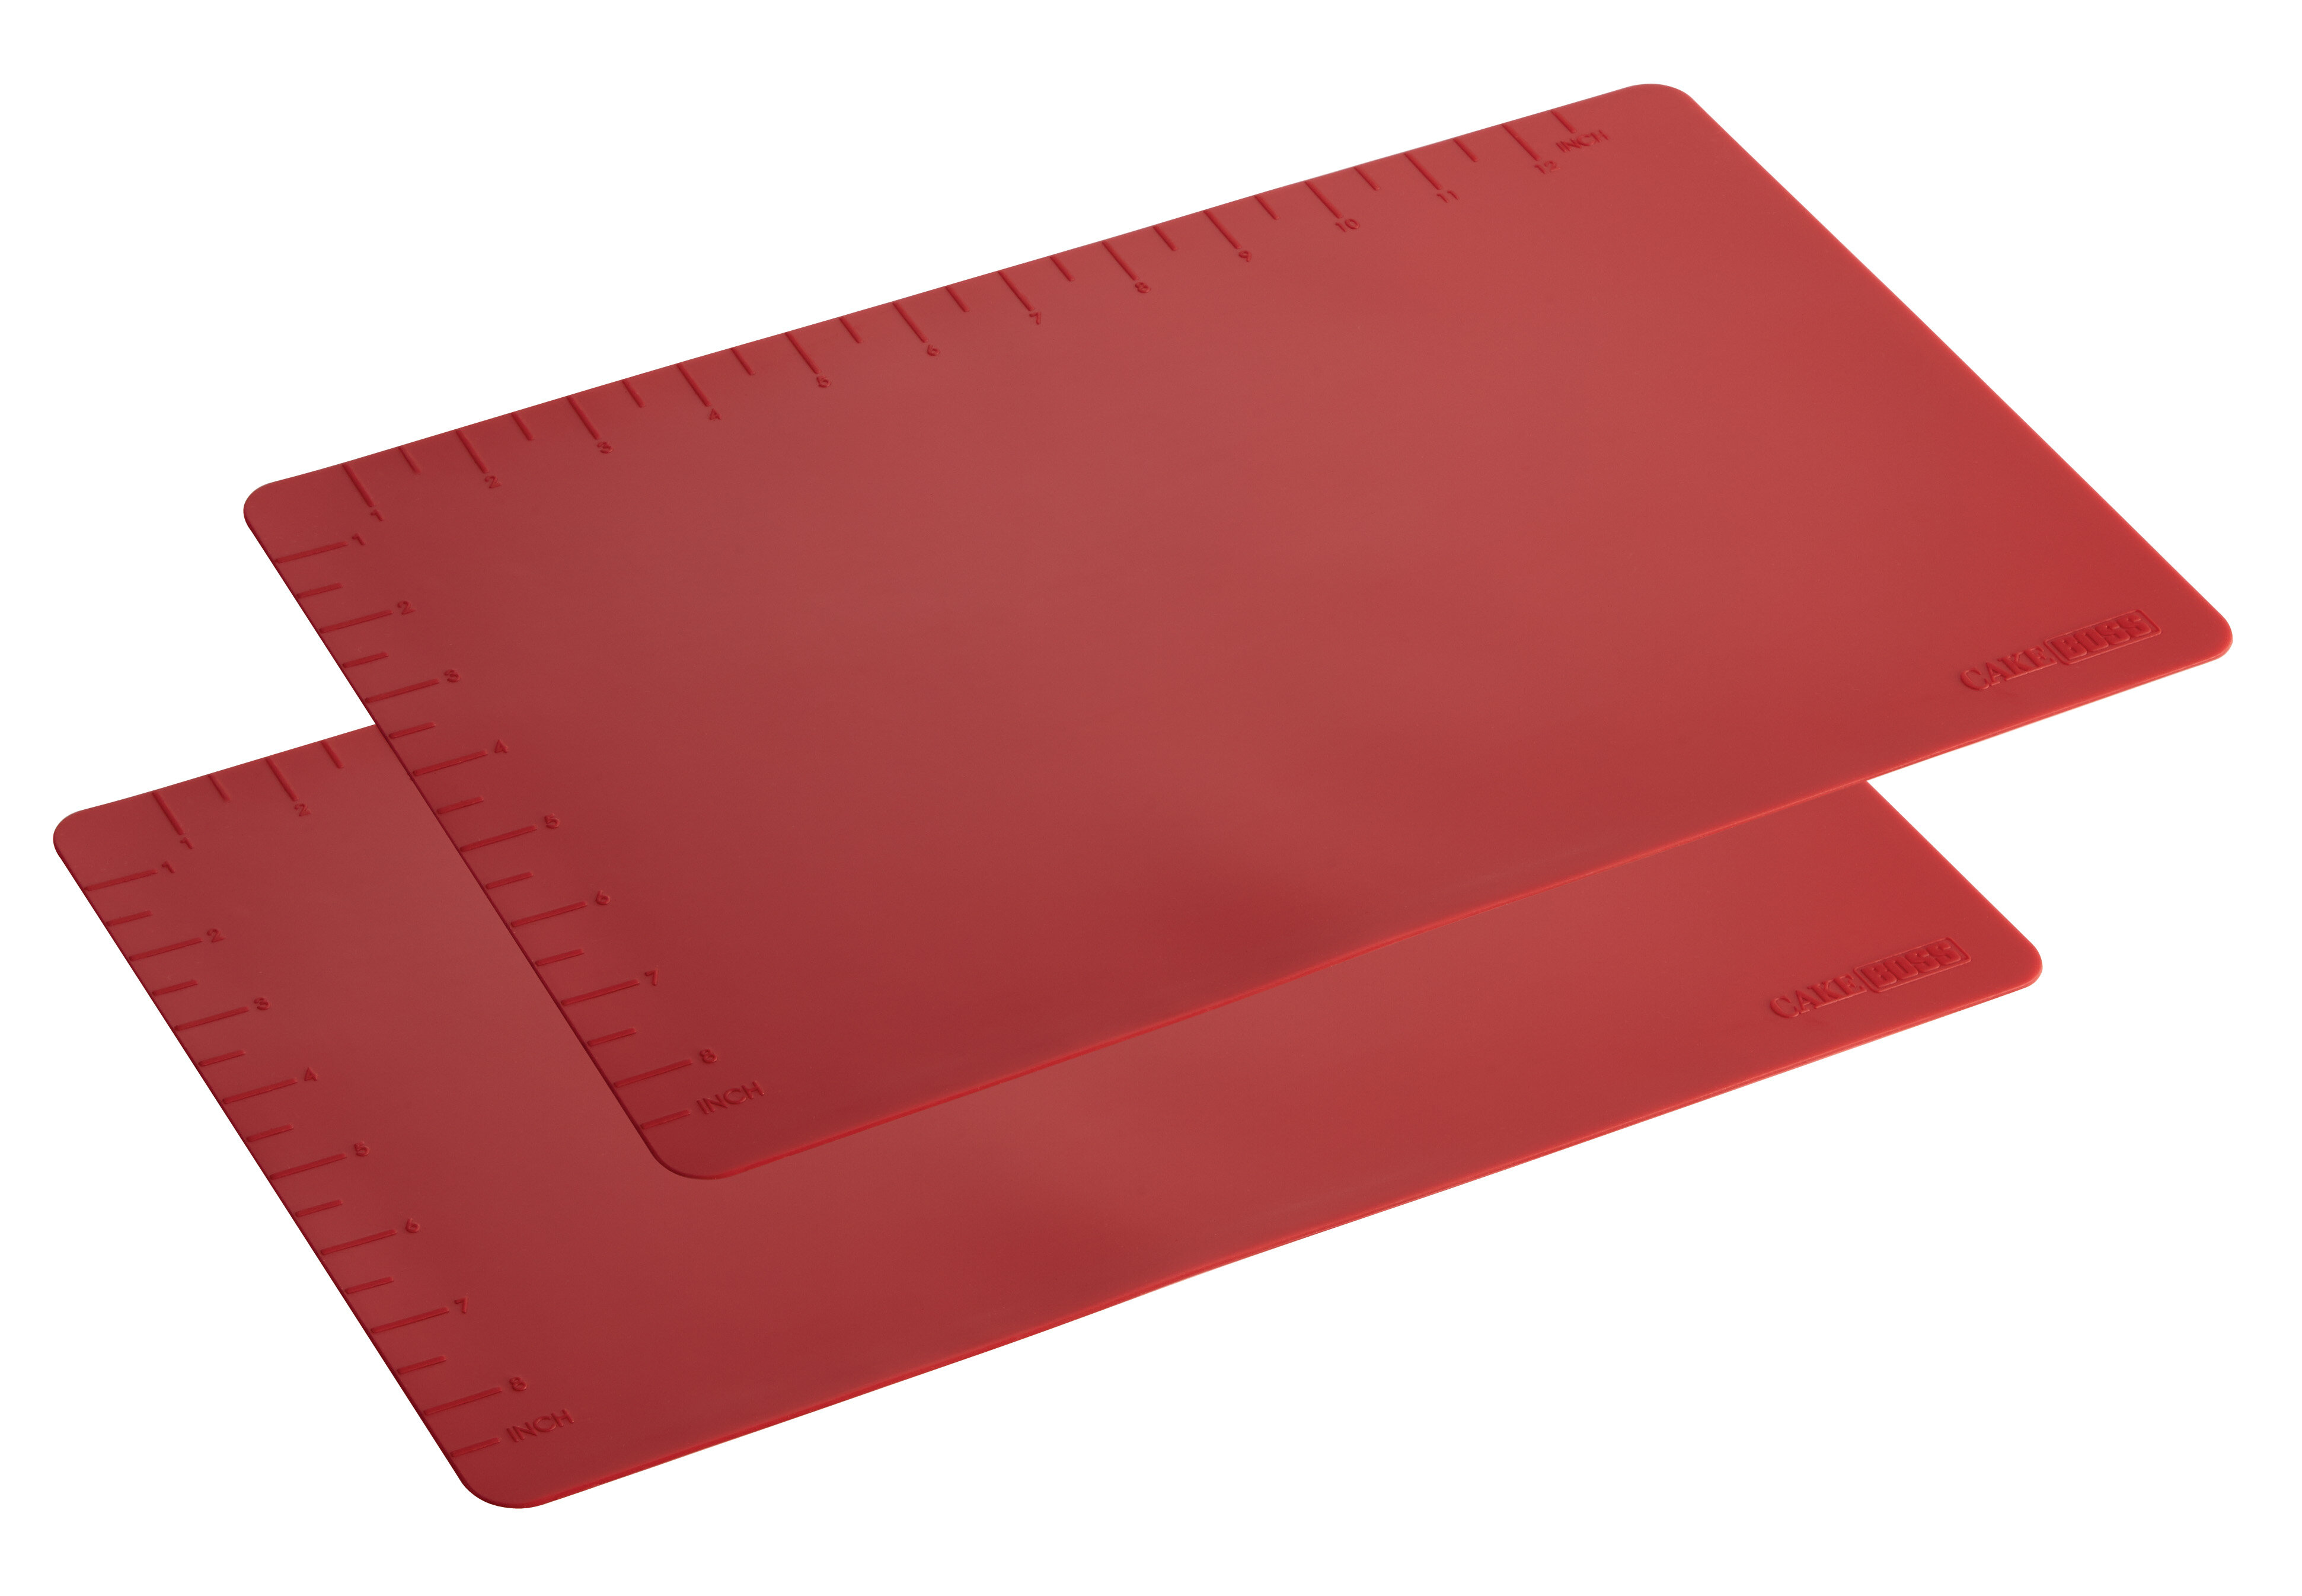 dish com drying mats customer durable x resistant silicone helpful amazon reviews xxl largest in pcr best rated heat mat